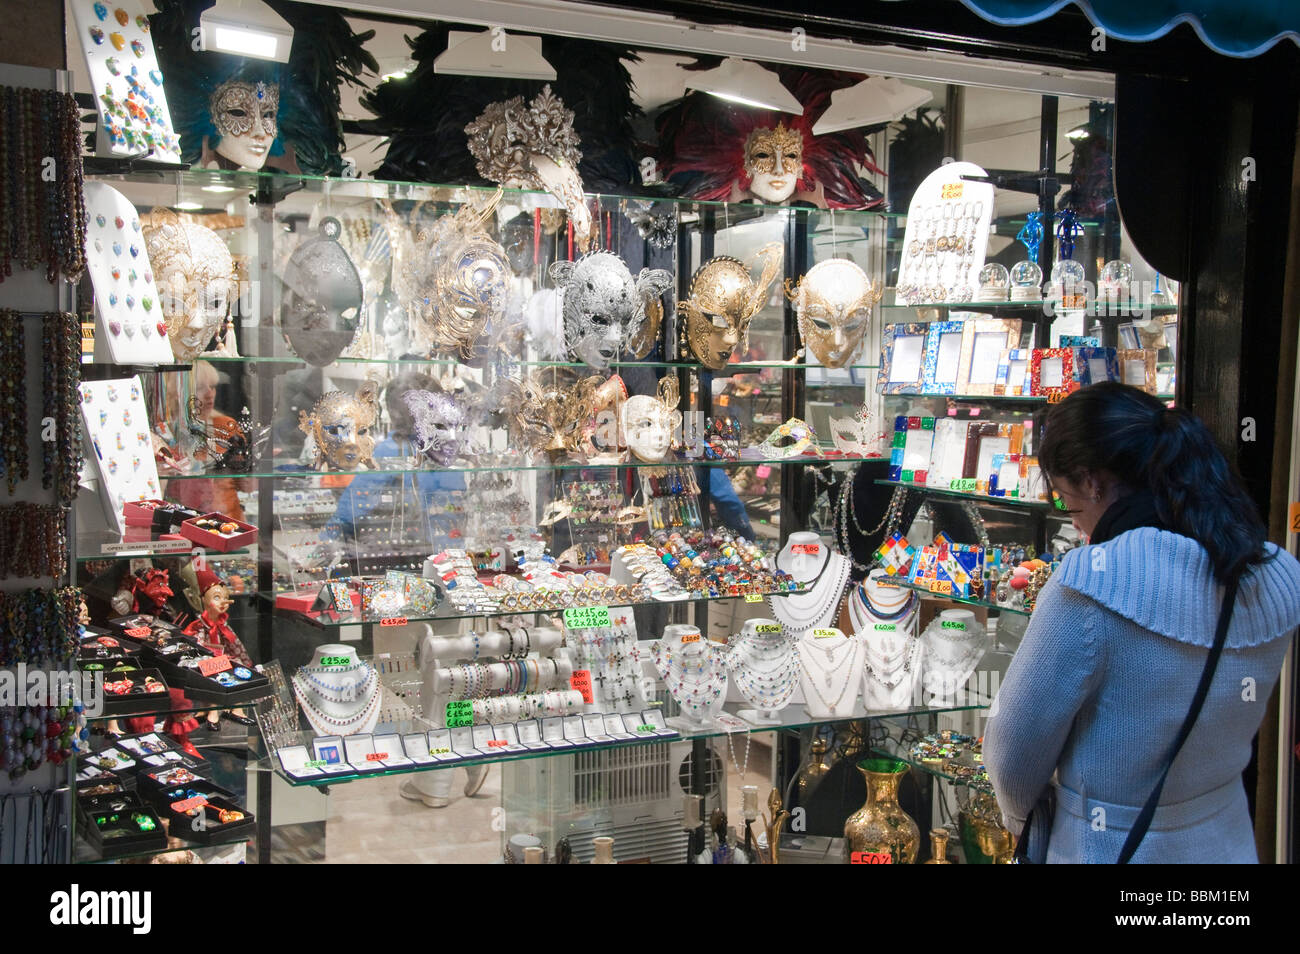 Tourist looking at face masks on display in shop window Murano Venice Italy - Stock Image